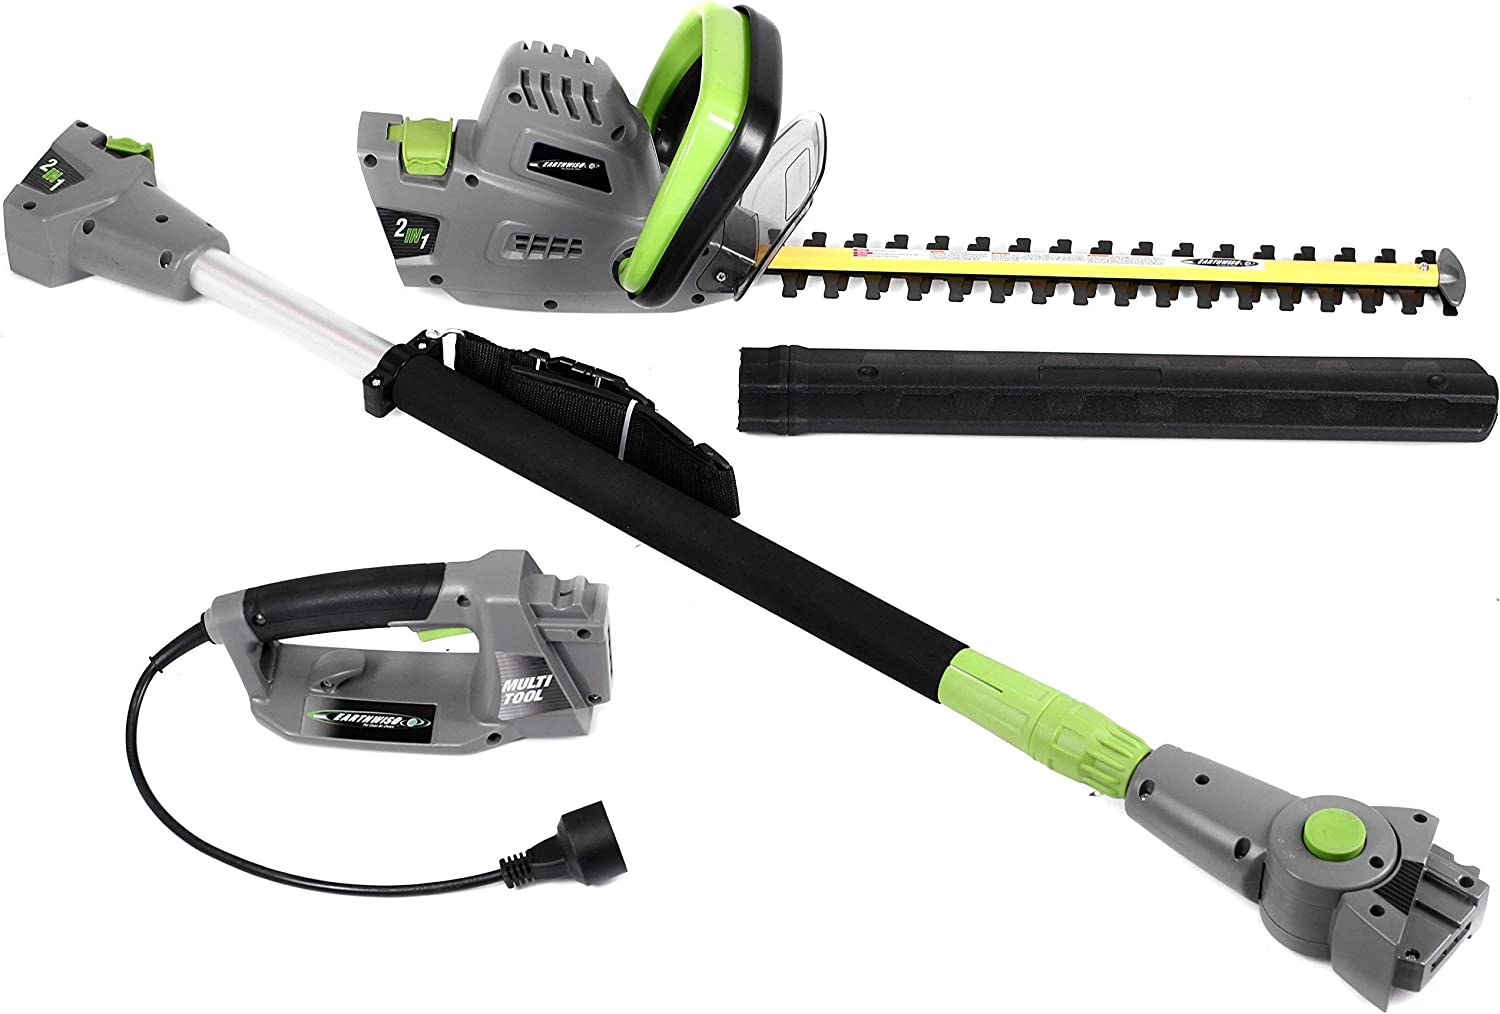 Earthwise CVPH43018 Corded 4.5 Amp Al sold out. Pole Convertible Hedge Purchase 2-in-1